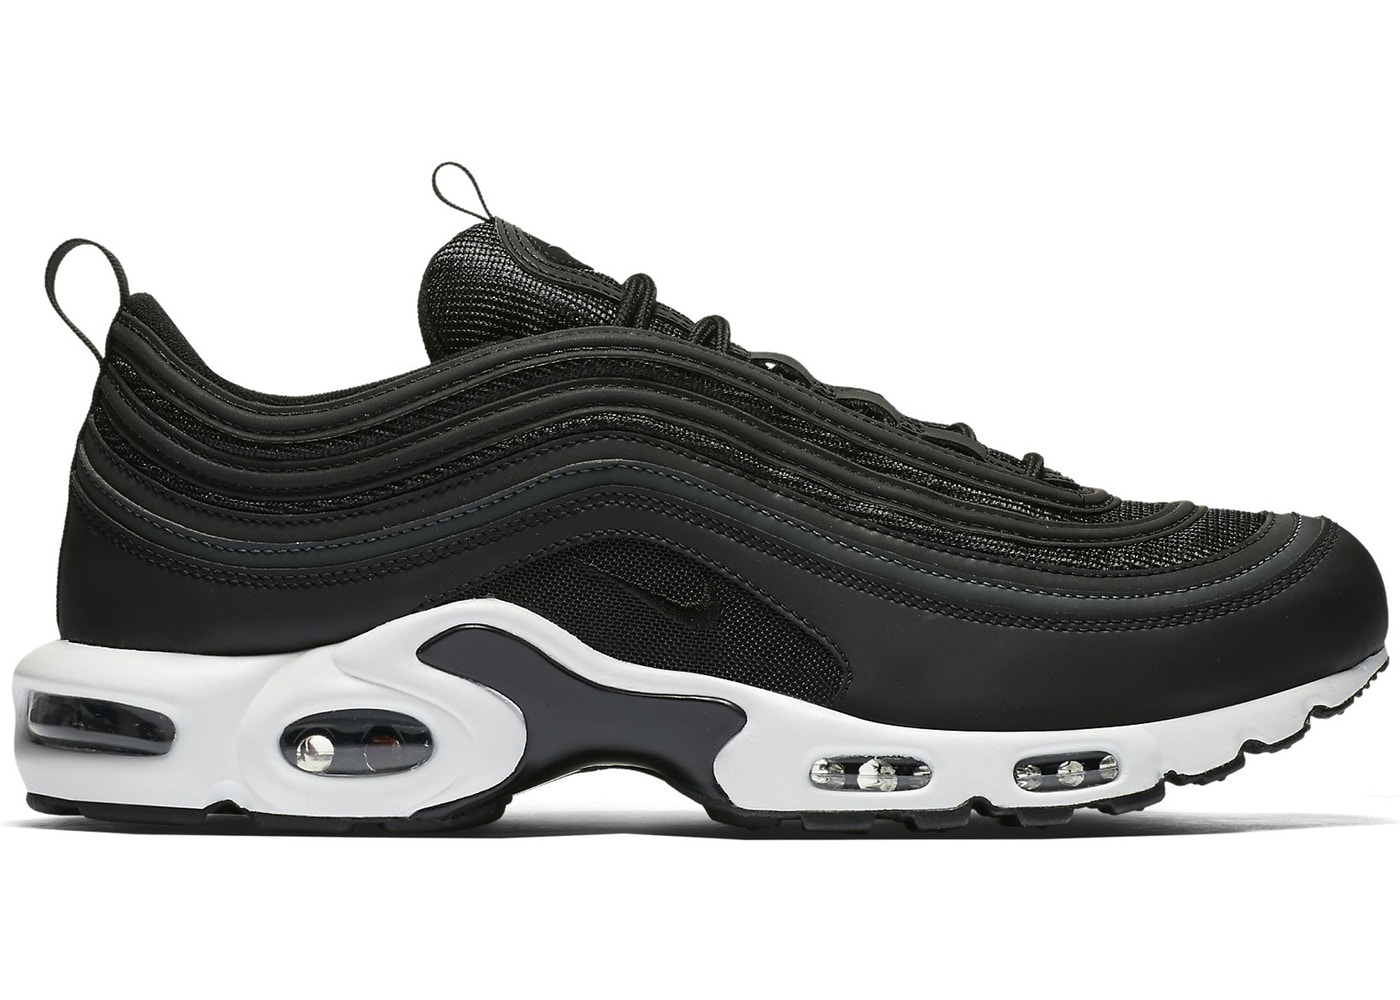 check-out 641c1 00b4d Air Max Plus 97 Black White